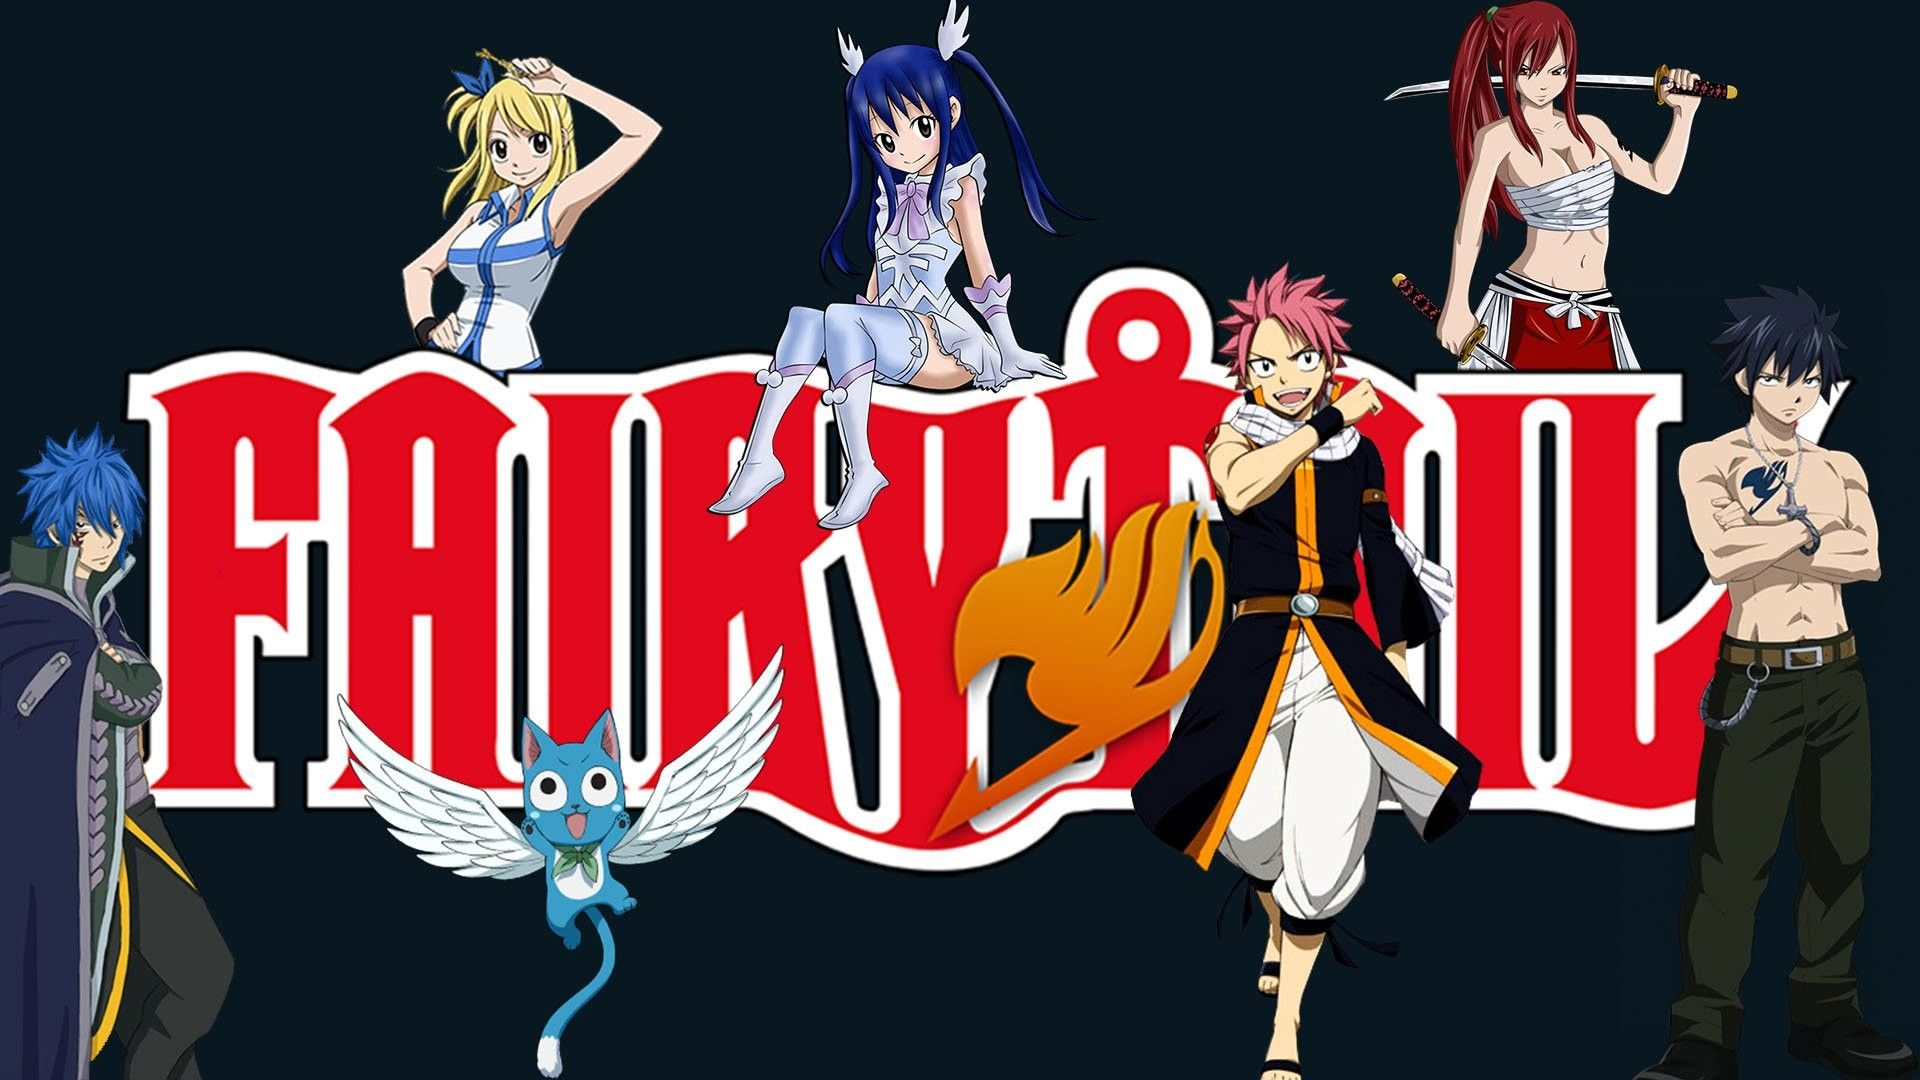 Fairy Tail Hd Wallpapers Anime New Tab Theme Fairy Tail Ships